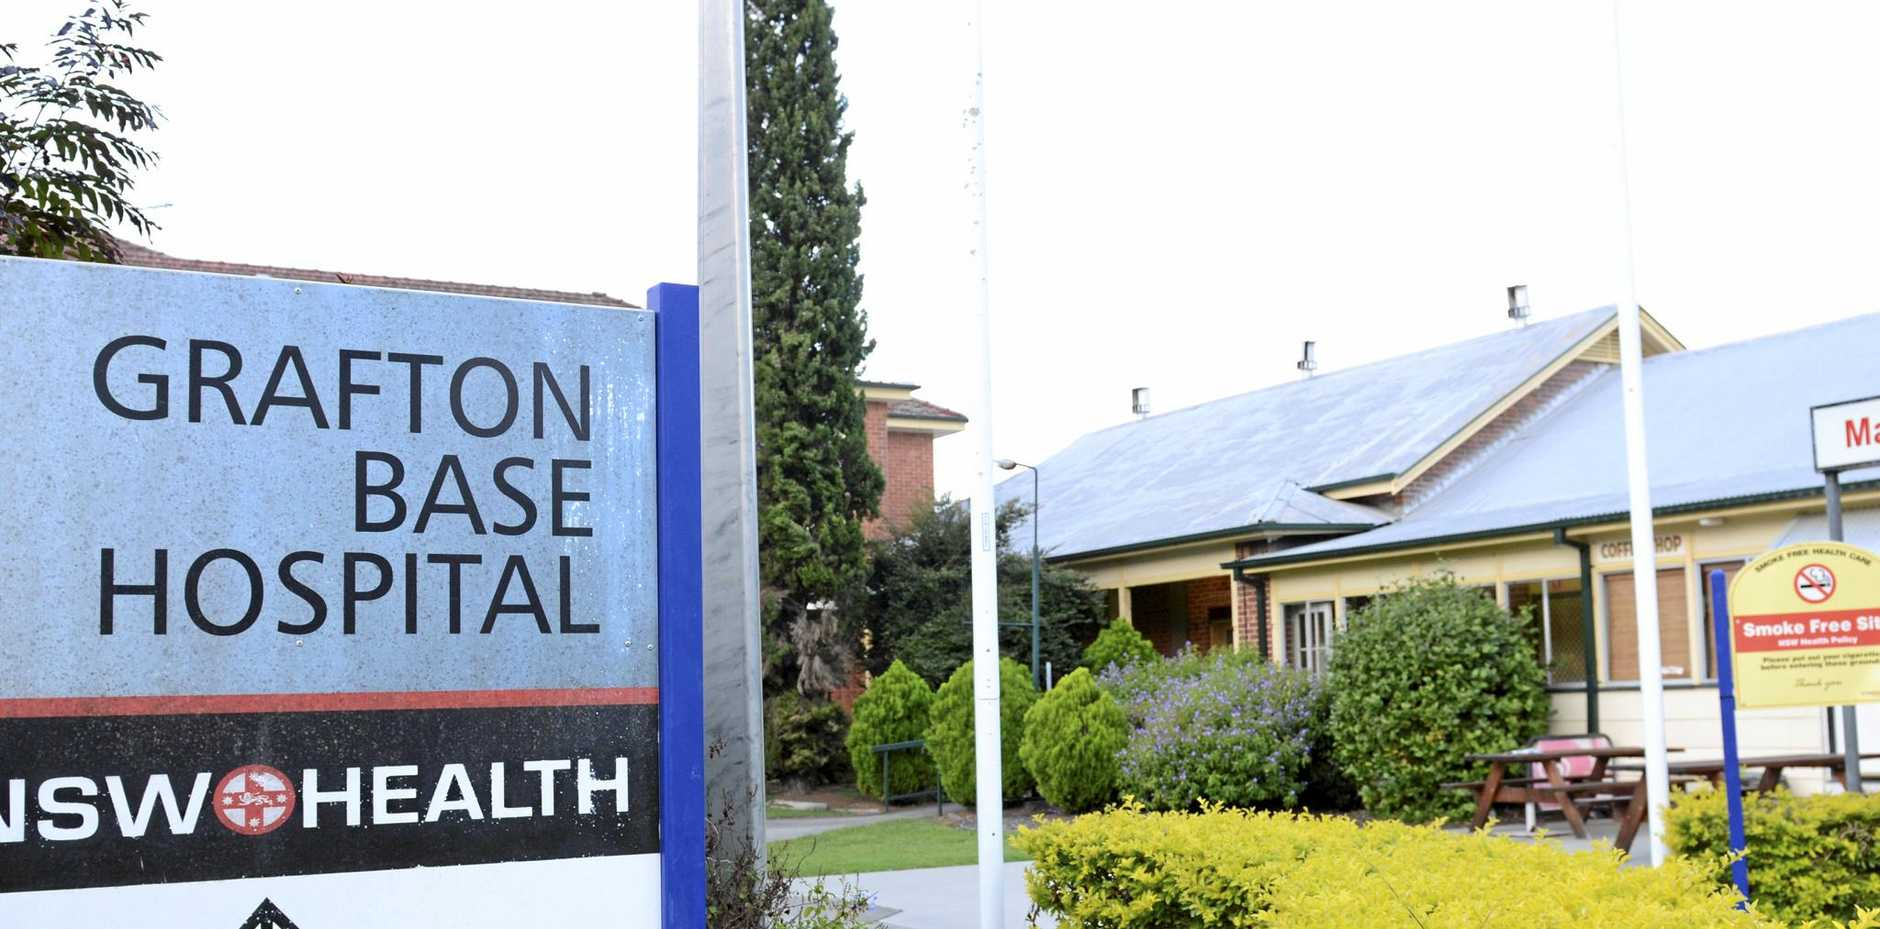 About one quarter of Grafton Base Hospital patients stay in the emergency department for more than four hours.